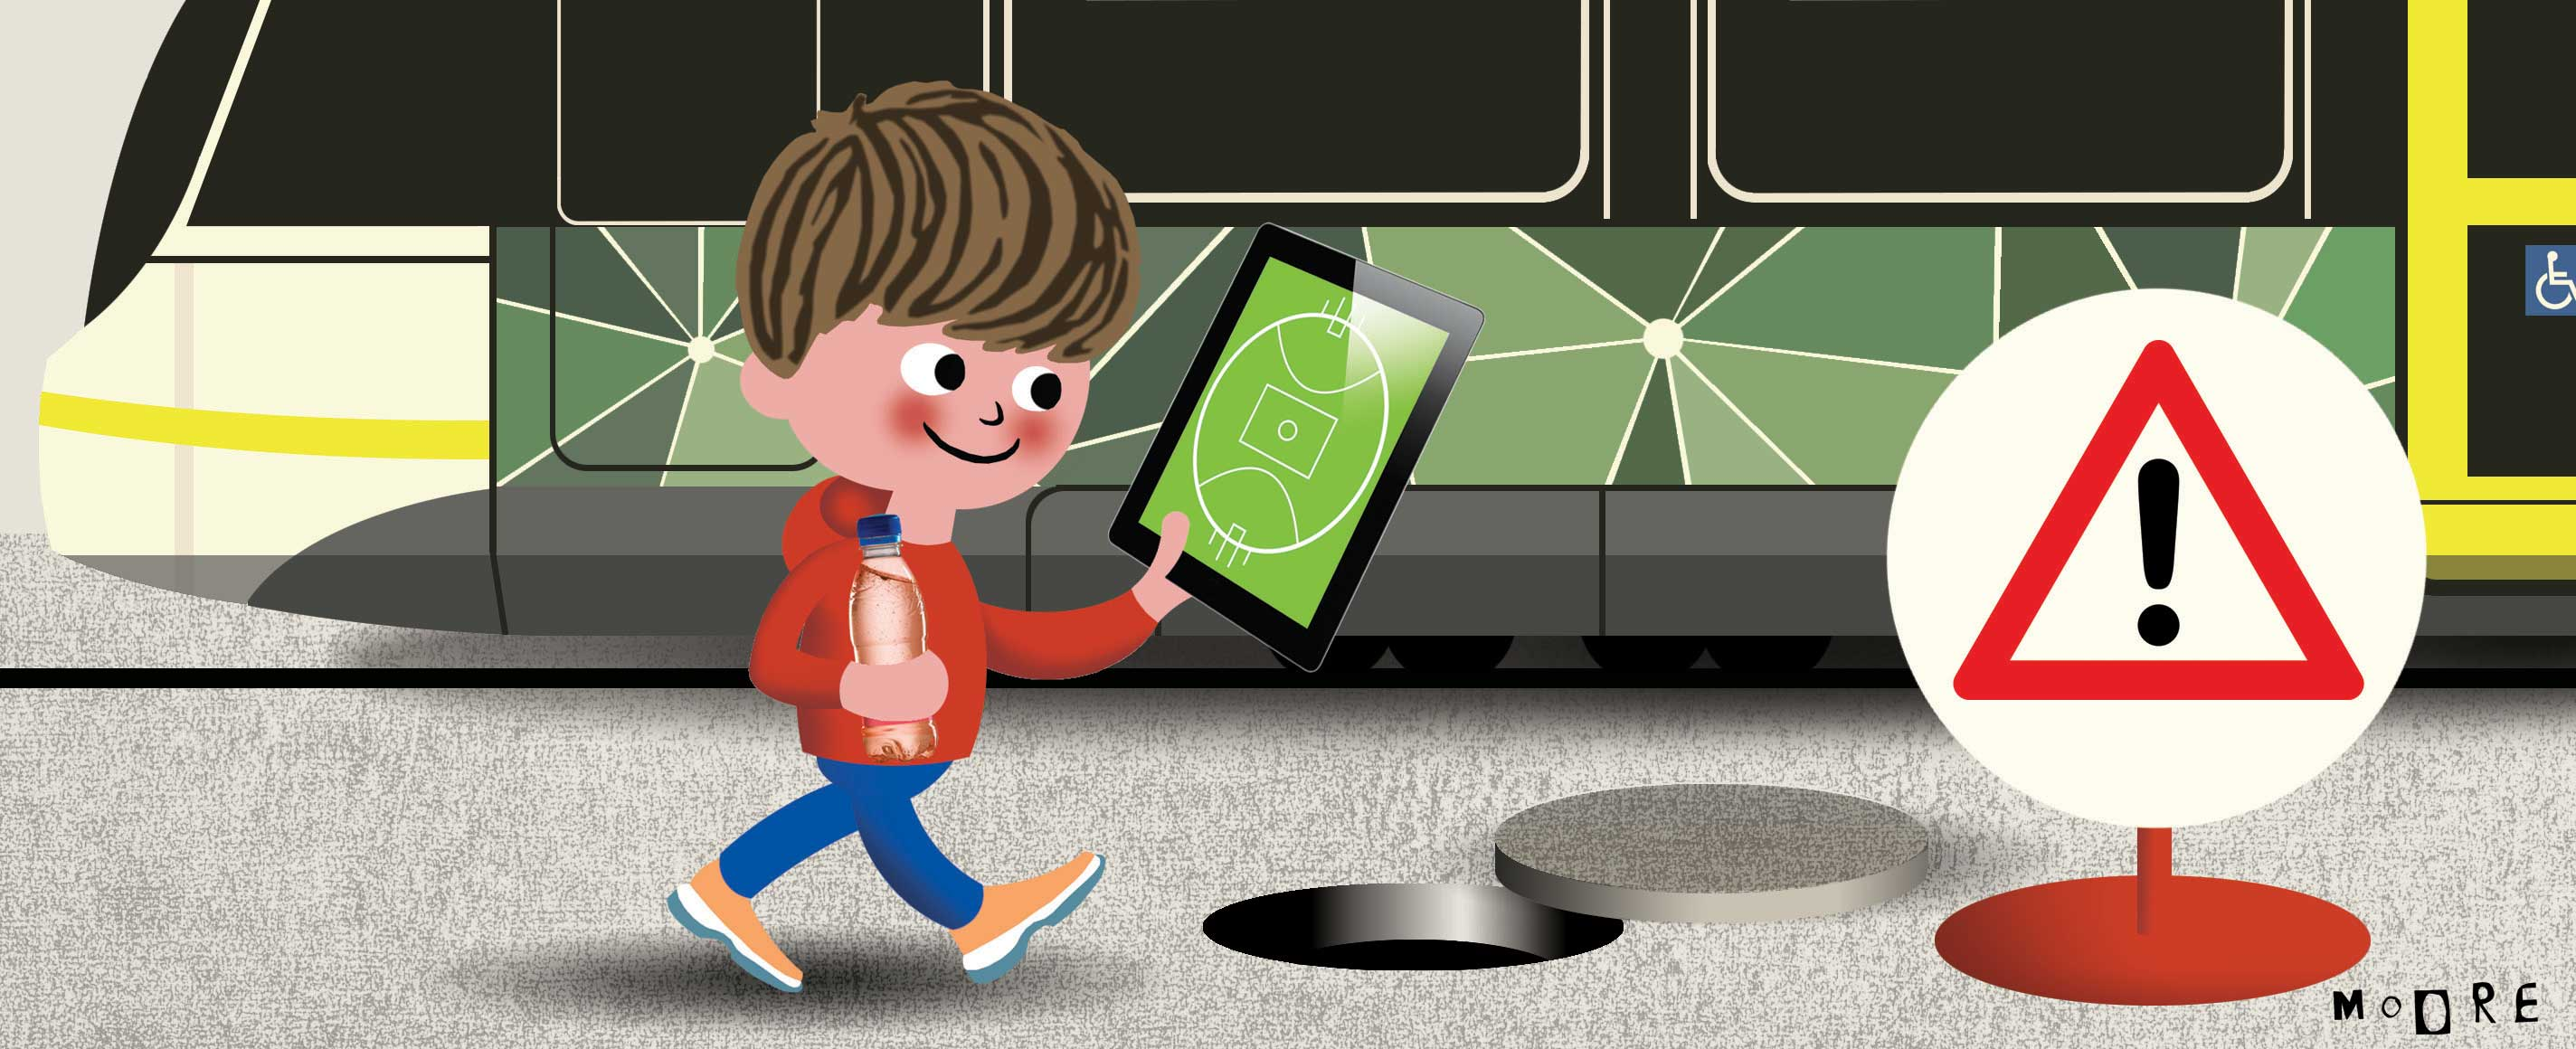 Illustration of a young boy walking along a footpath, holding a softdrink and staring at a tablet device with an AFL football field on it – so he can't see the warning sign and open manhole in the footpath in front of him, which he is about to fall into.